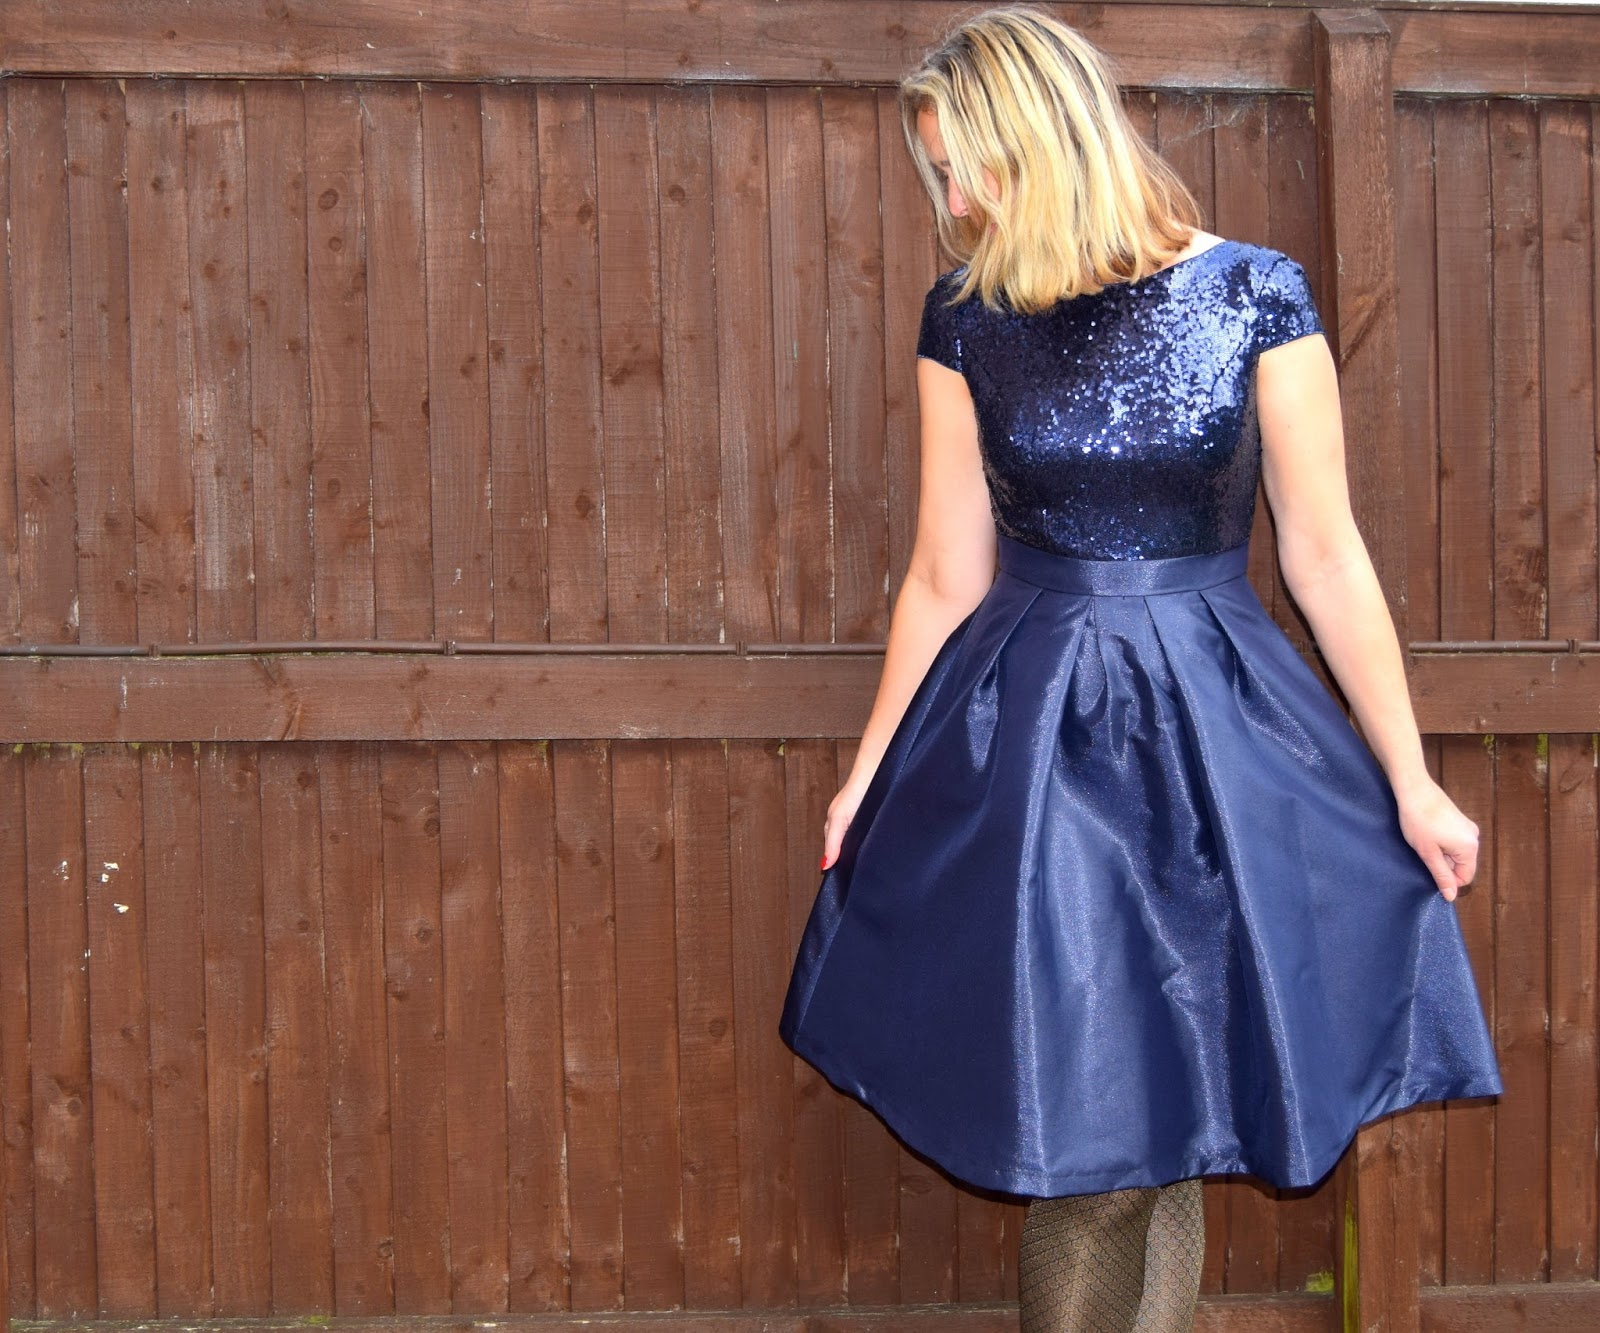 Sparkly Dresses For The Party Season